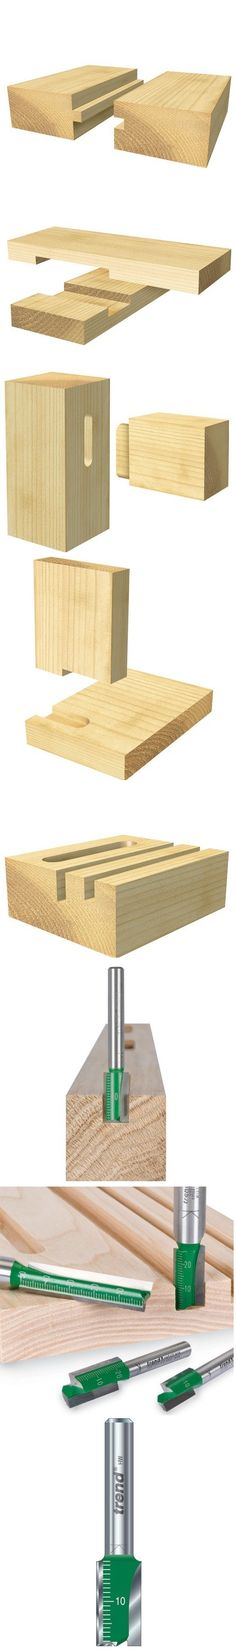 * Etched with metric scale on body to aid depth setting. * Use on softwoods, hardwoods, MDF, plywood and chipboard. * All cutters have a bottom cut feature. Two Flute #Cutter 12.7mm Dia x 25mm Cut Scale http://www.woodfordtooling.com/craftpro-router-cutters/straight-flutes/two-flute-straight-metric-scale/two-flute-12-7mm-diameter-x-25mm-cut-scale-367.html